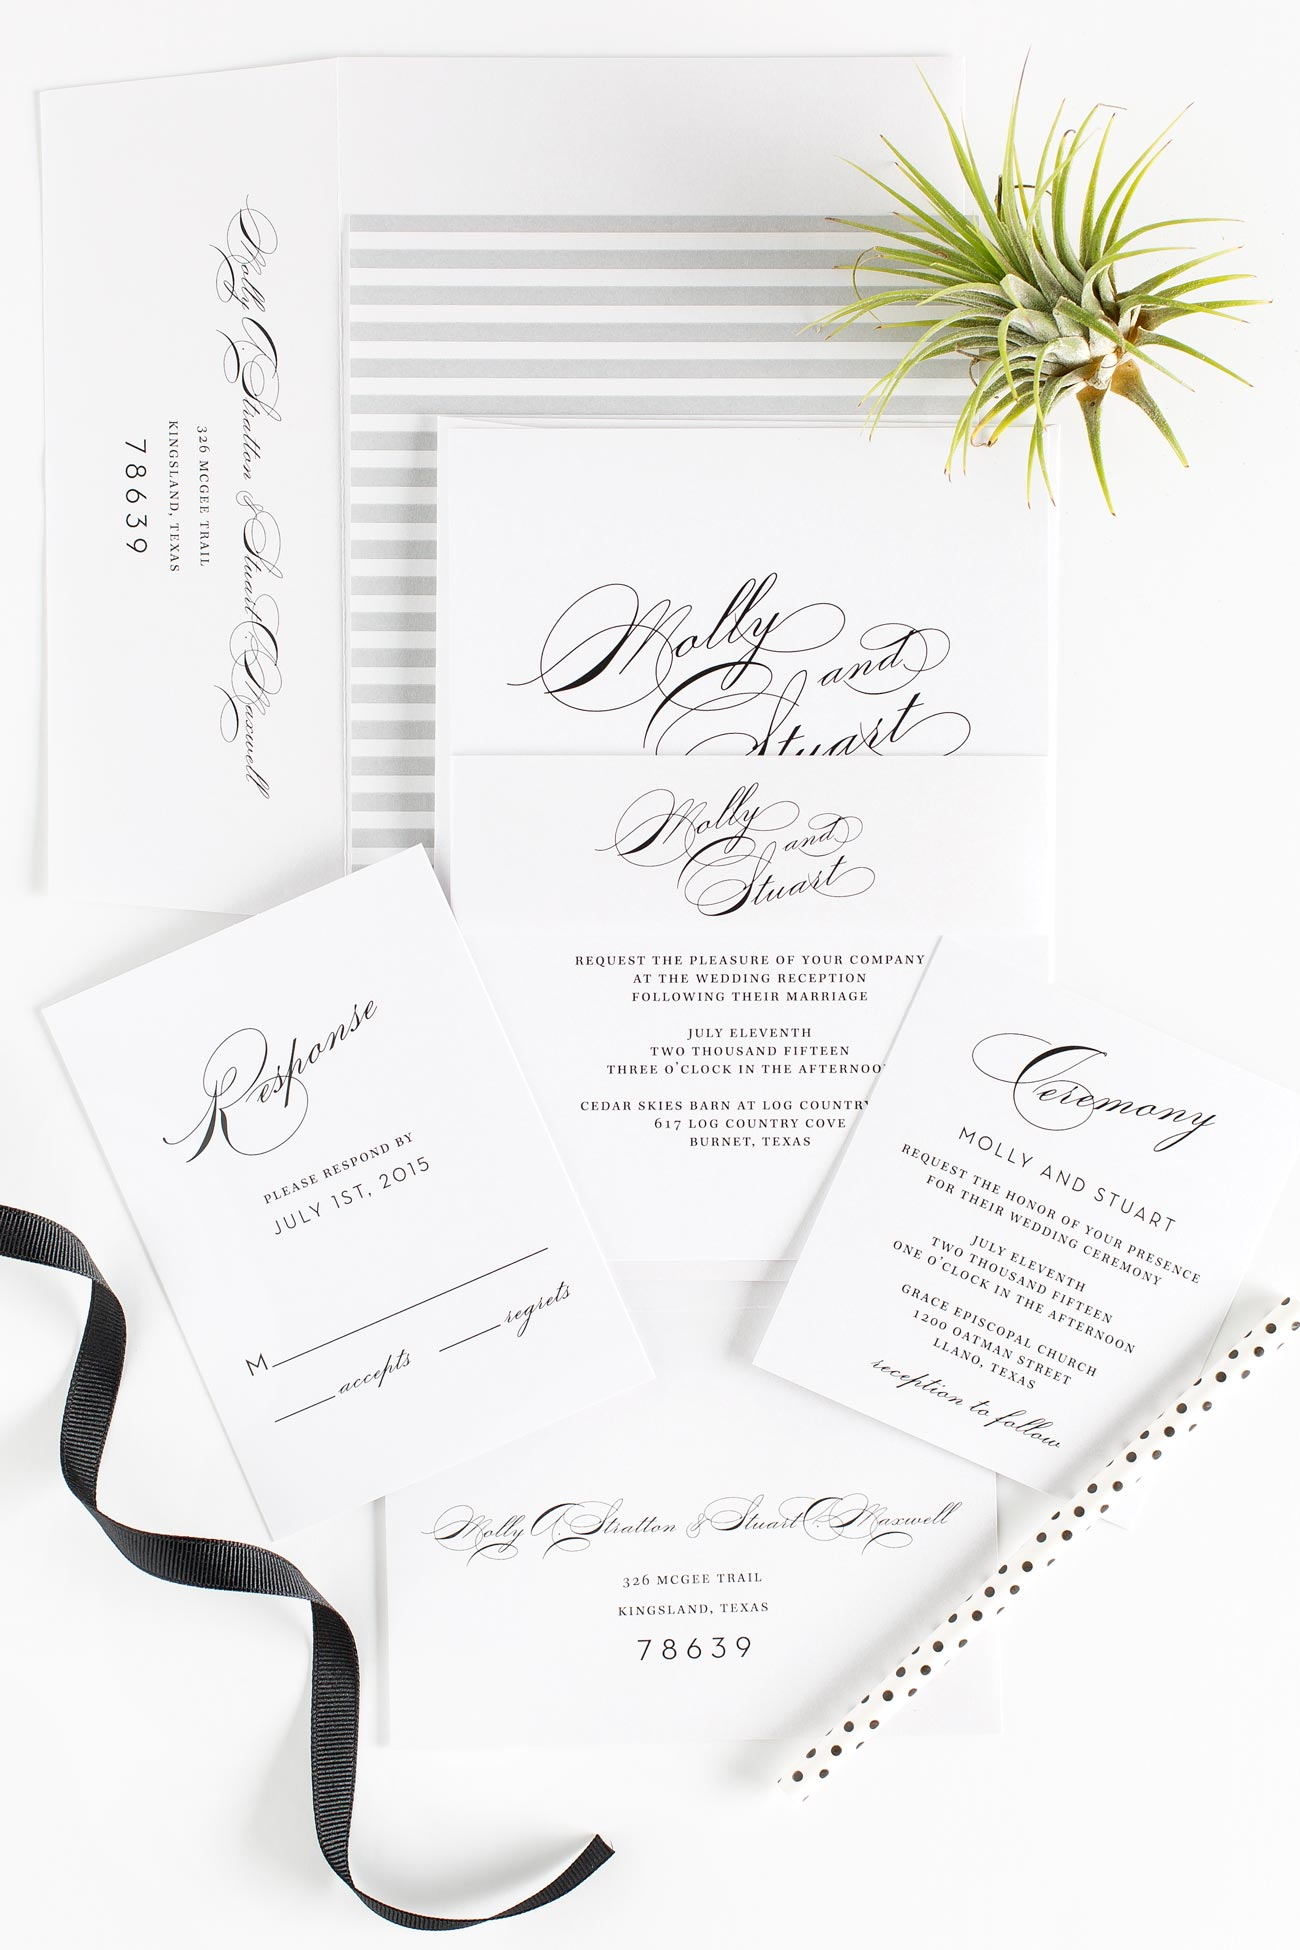 Vintage wedding invitations in gray